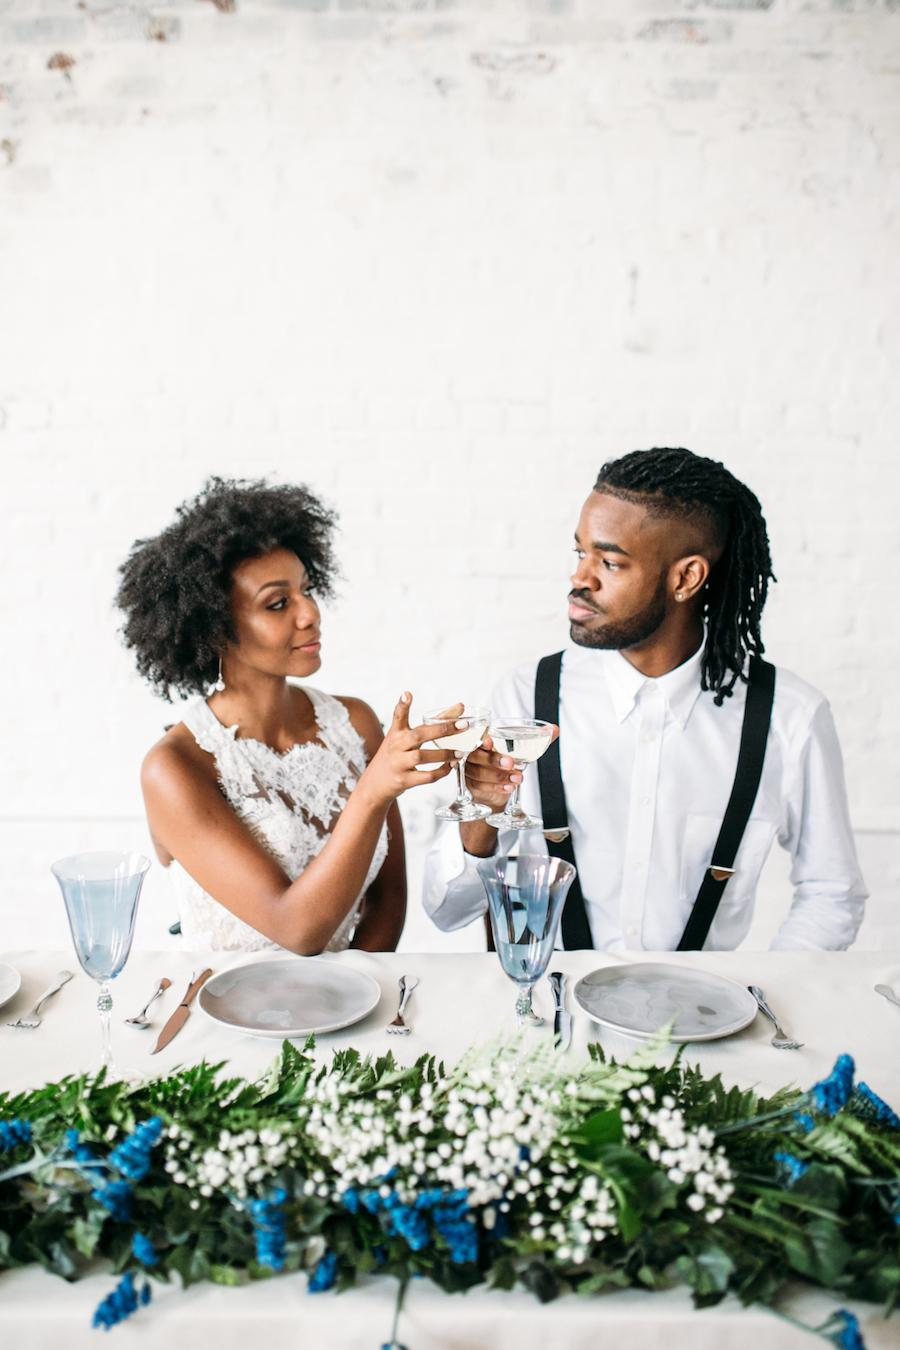 Four Unique Wedding Ideas For Every Bride and Groom | Philly